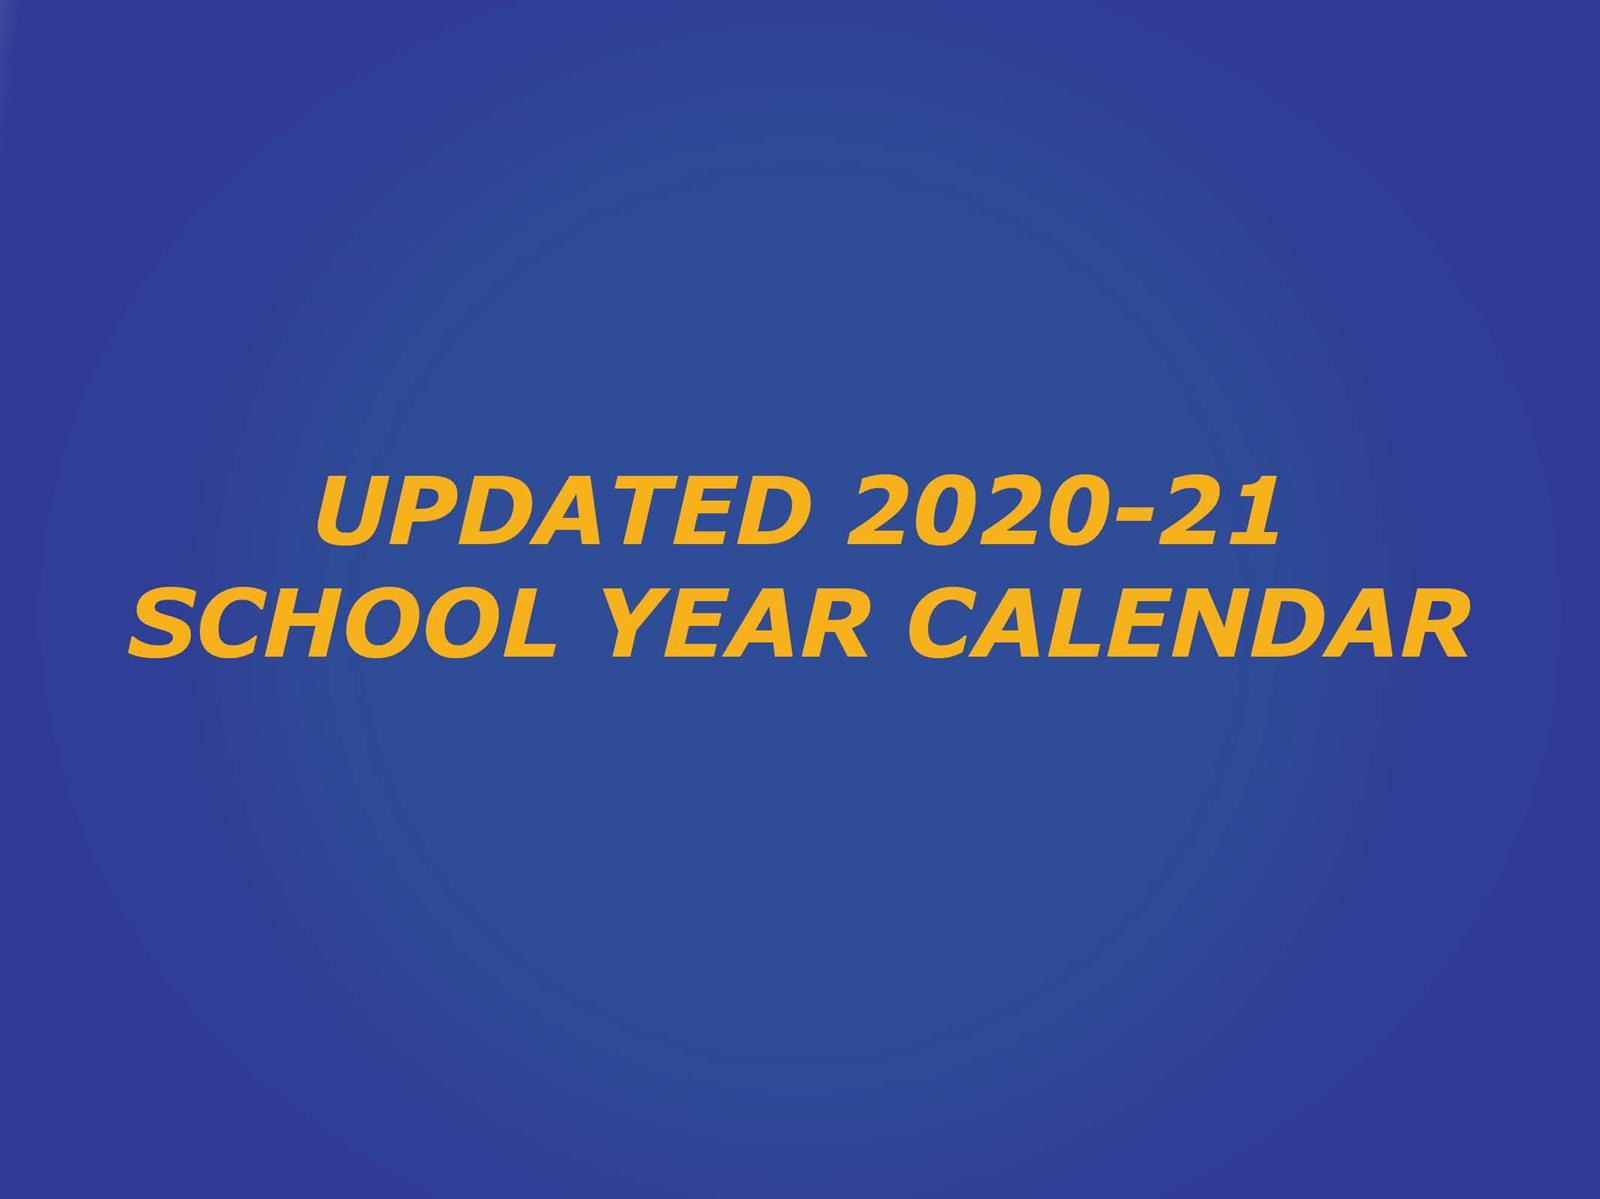 Blue box with text Updated 2020-21 School year calendar